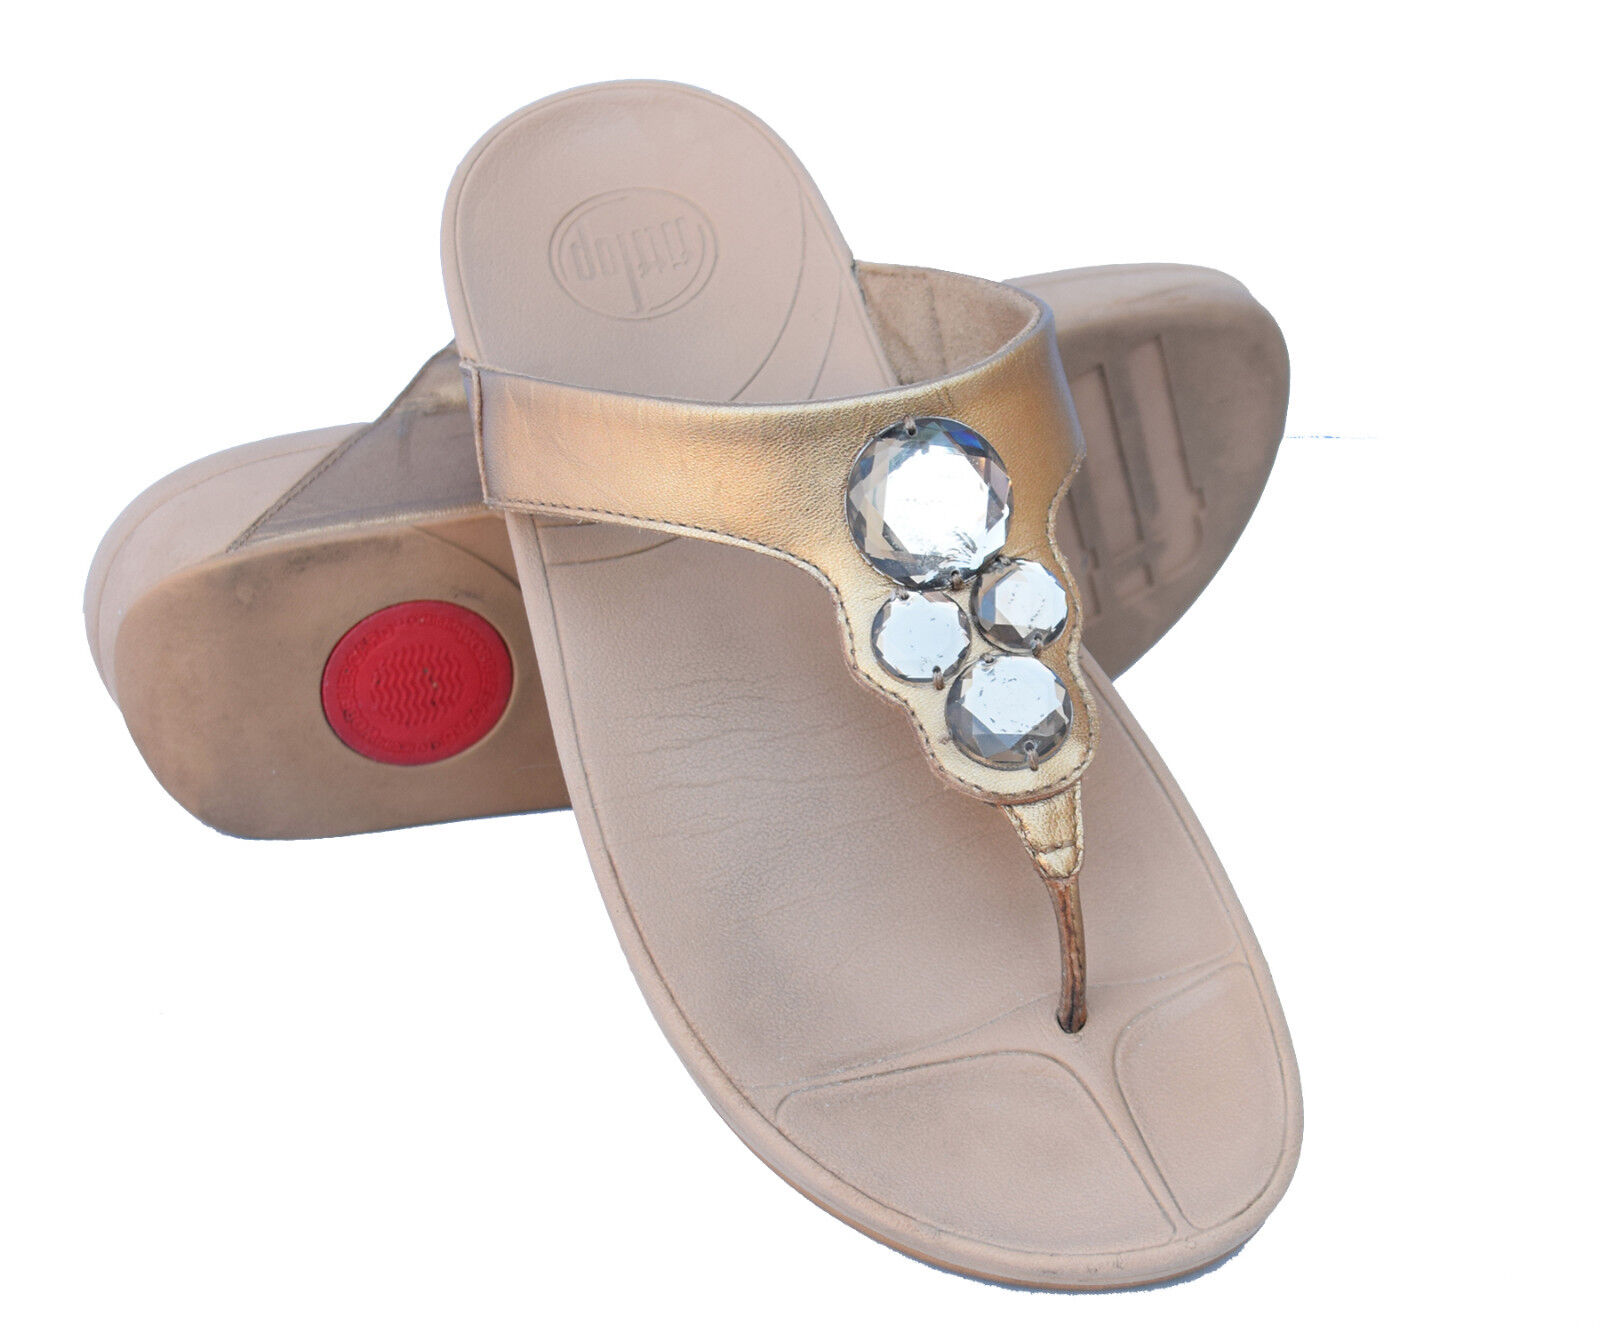 FITFLOP Lunetta Jeweled Metallic Fit Flops Padded Comfort